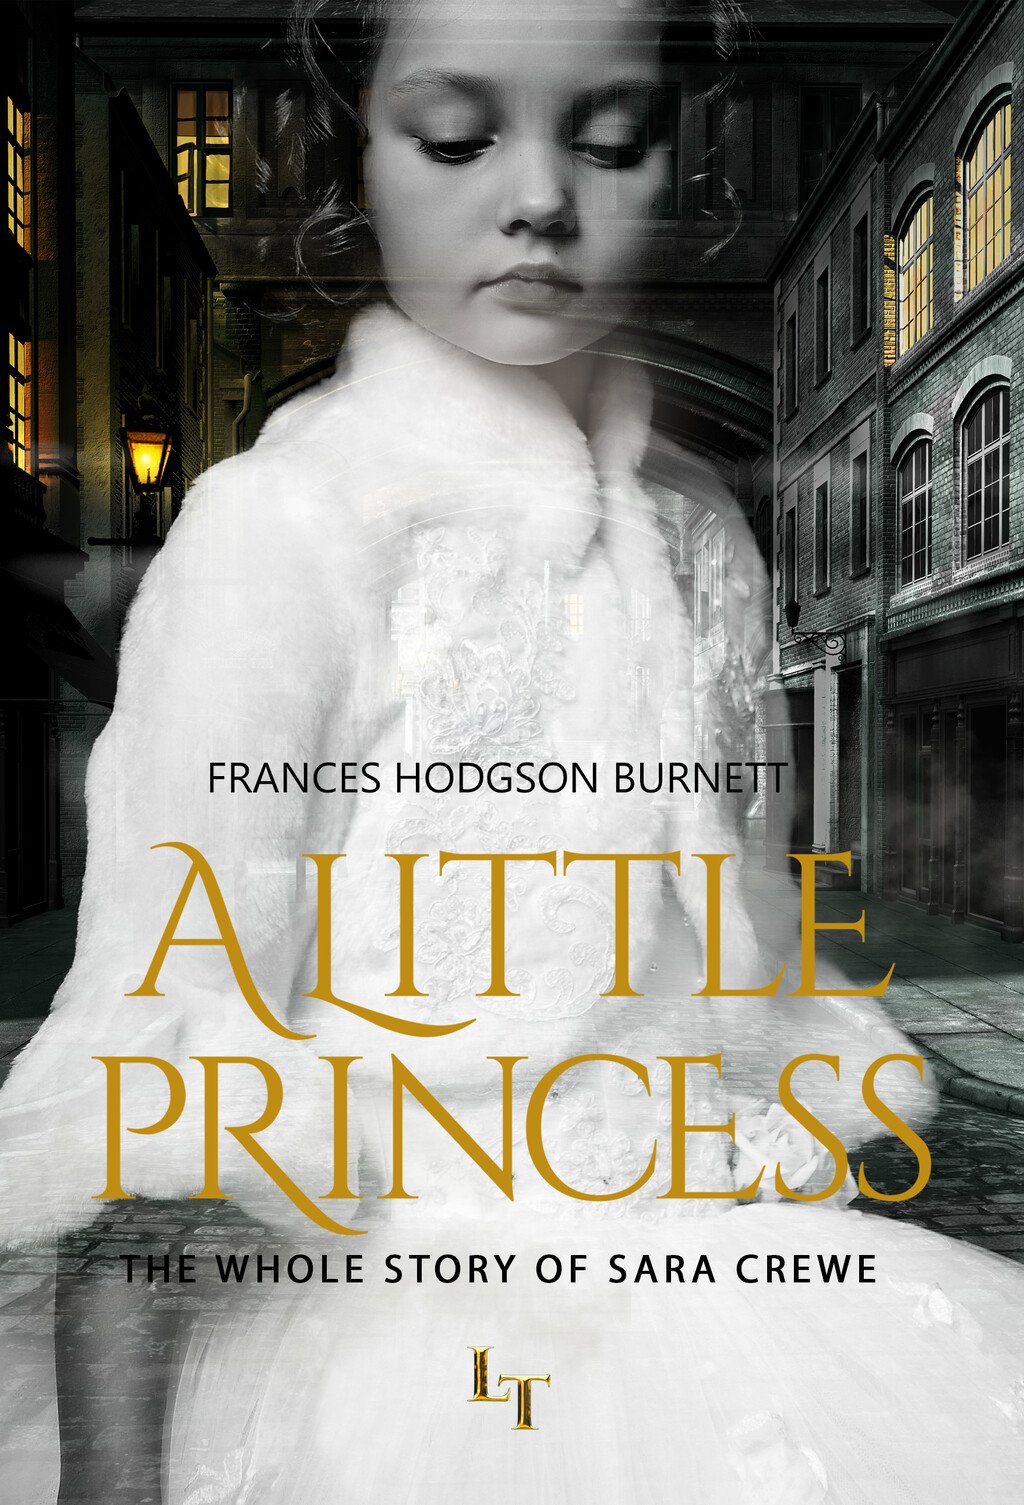 A Little Princess by Frances Hodgson Burnett - Land of Tales